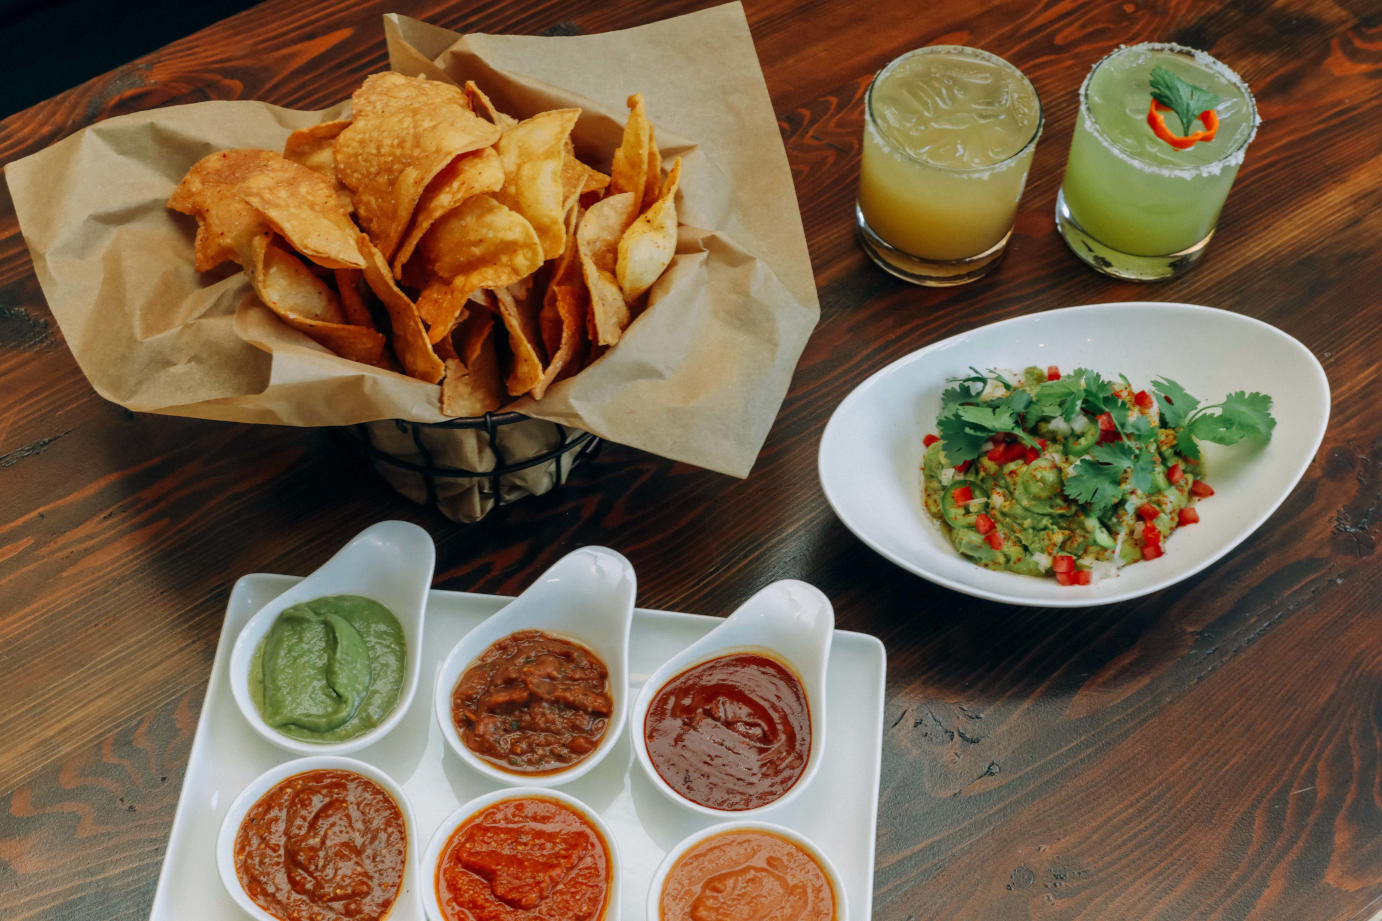 Nachos with dips and guac sauce